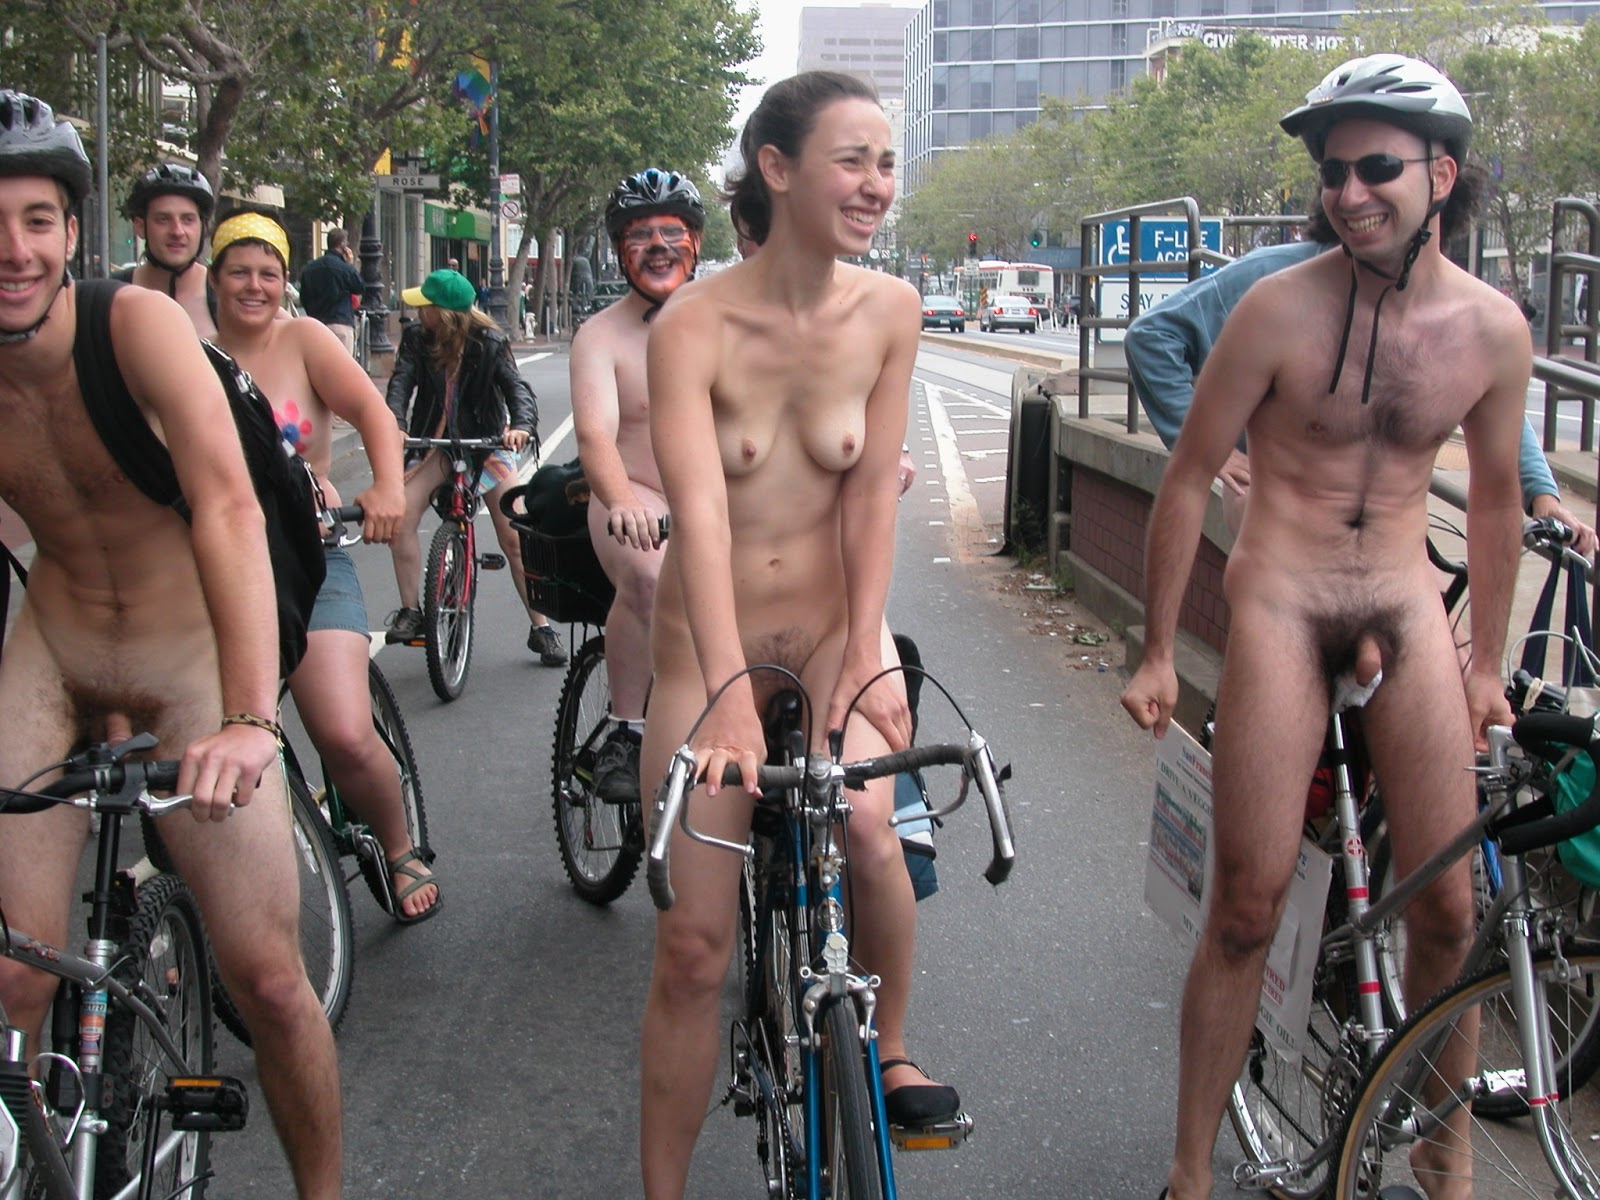 You Nude biker girls in public thought differently